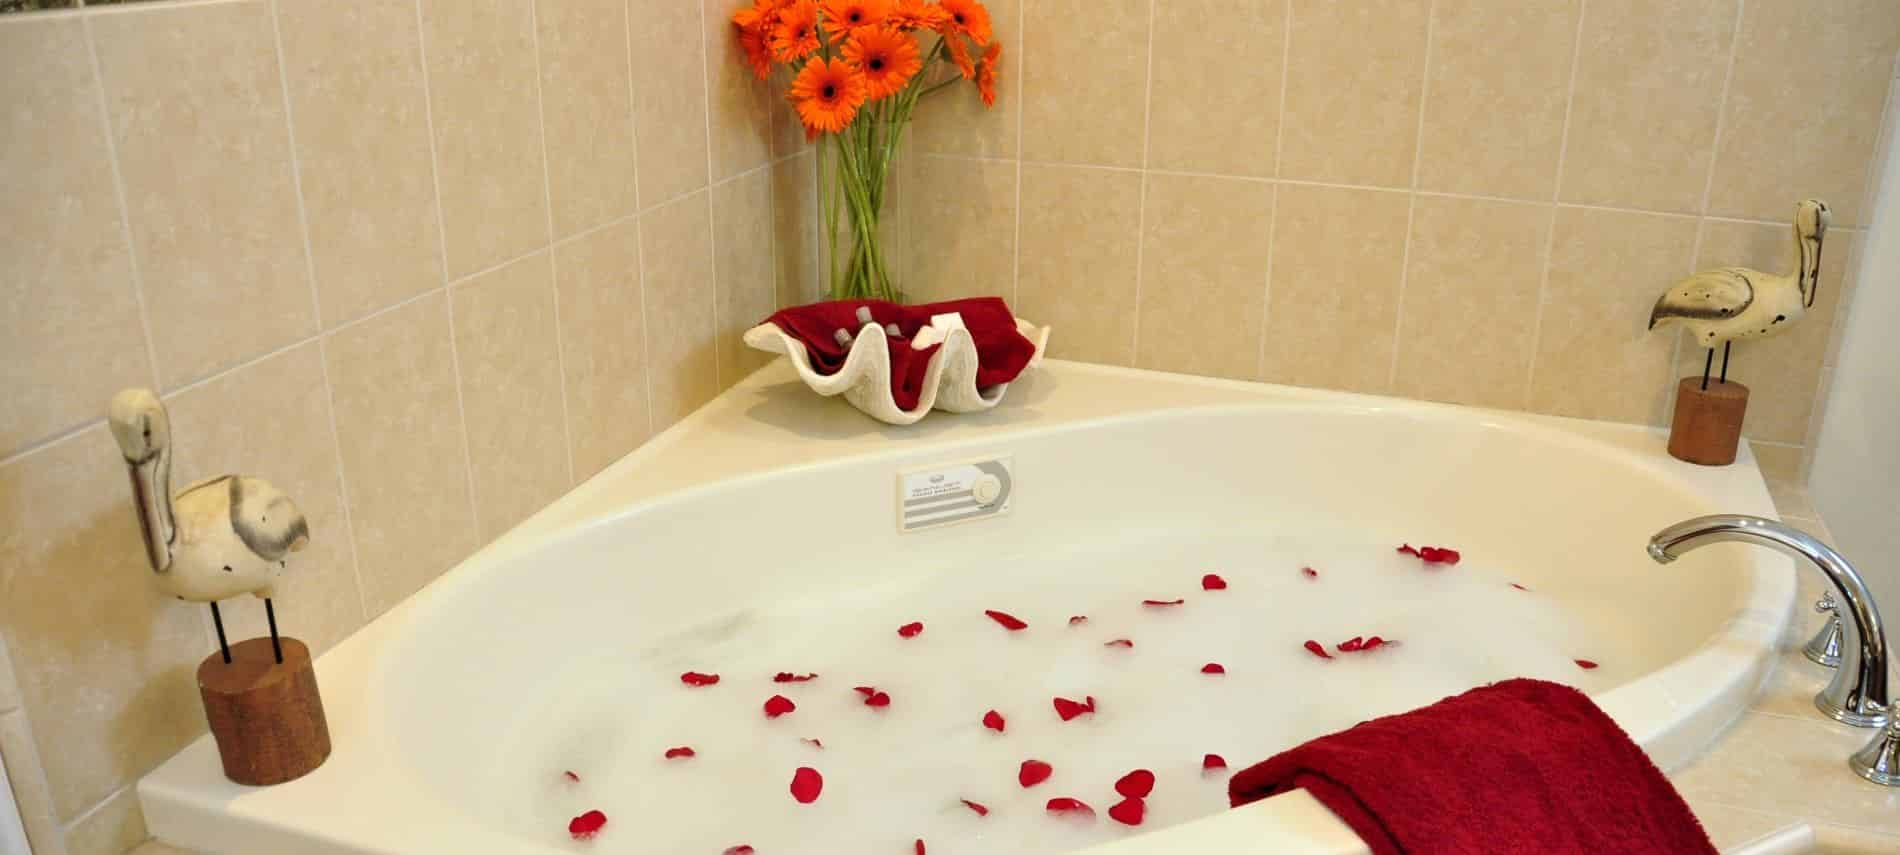 San Miguel guest bath corner tub with tiled walls and steps topped with red rose petals